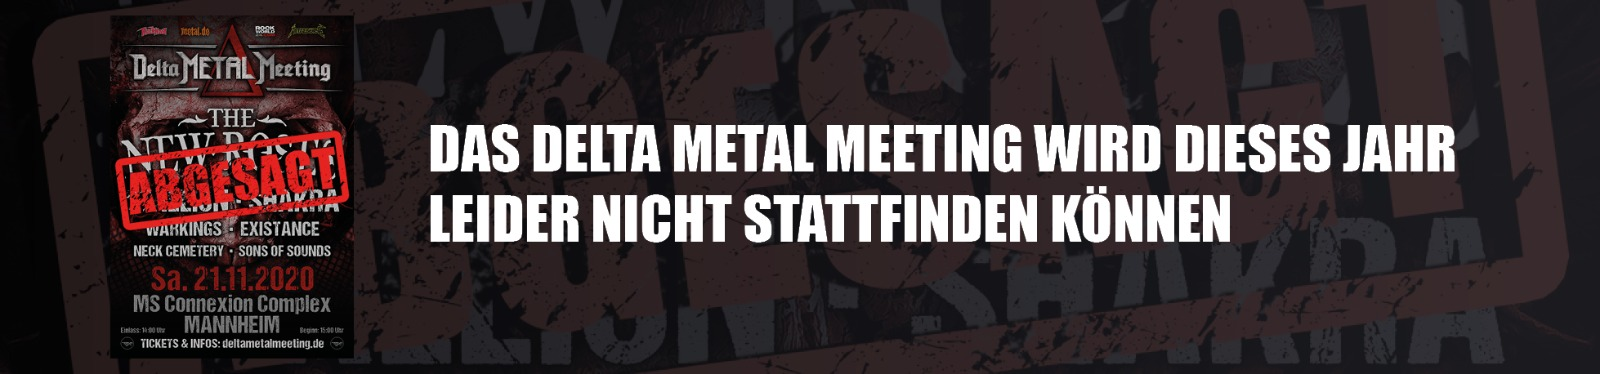 Delta Metal Meeting 2020